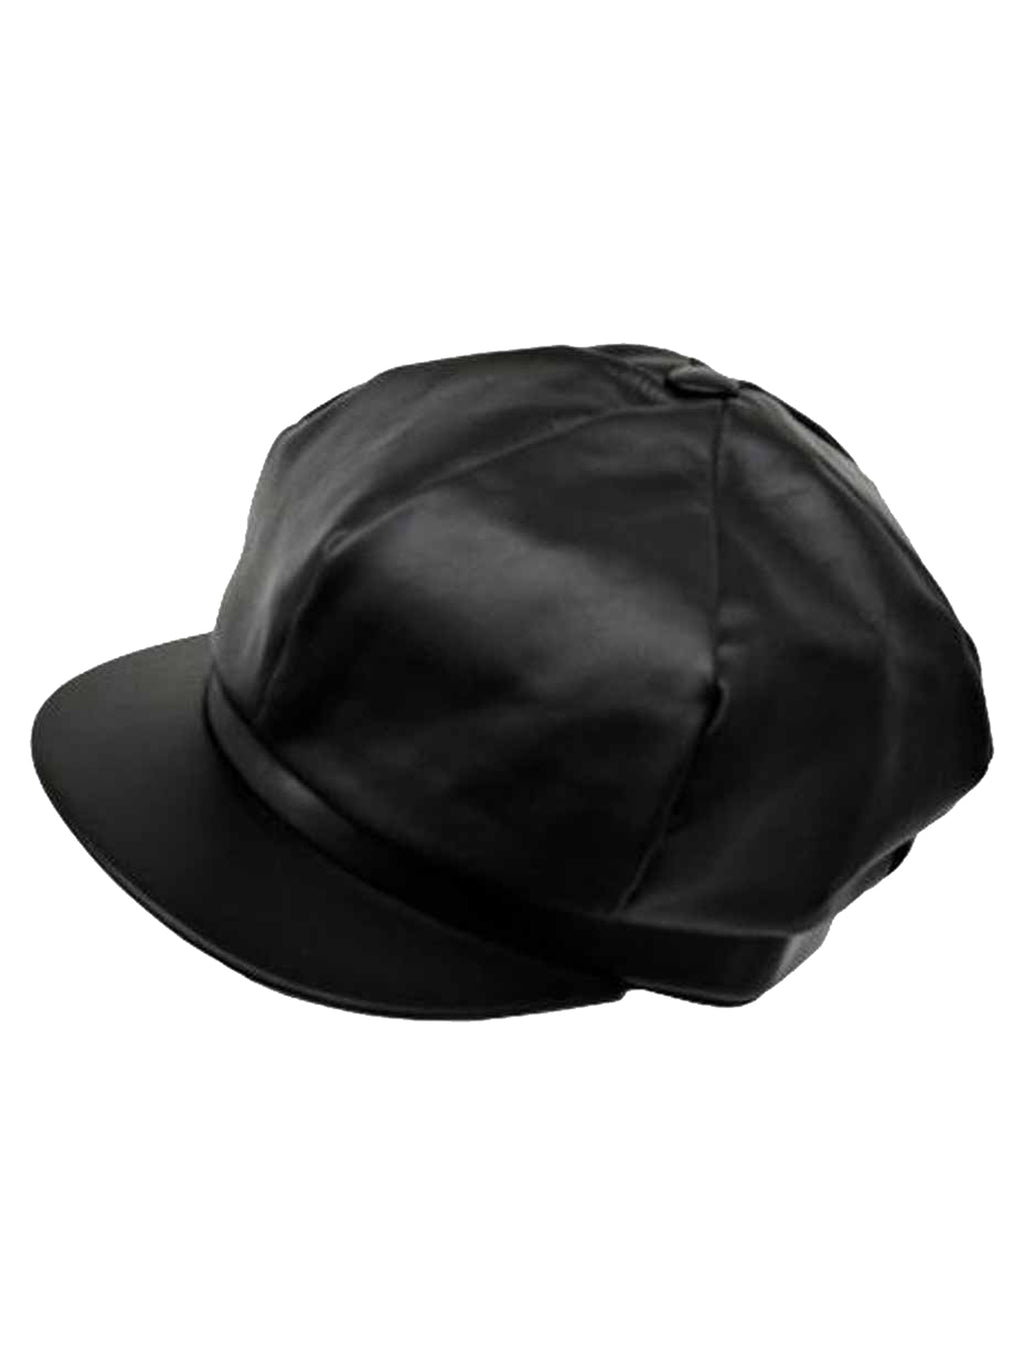 Genuine Leather 6 Panel Newsboy Cap Hat